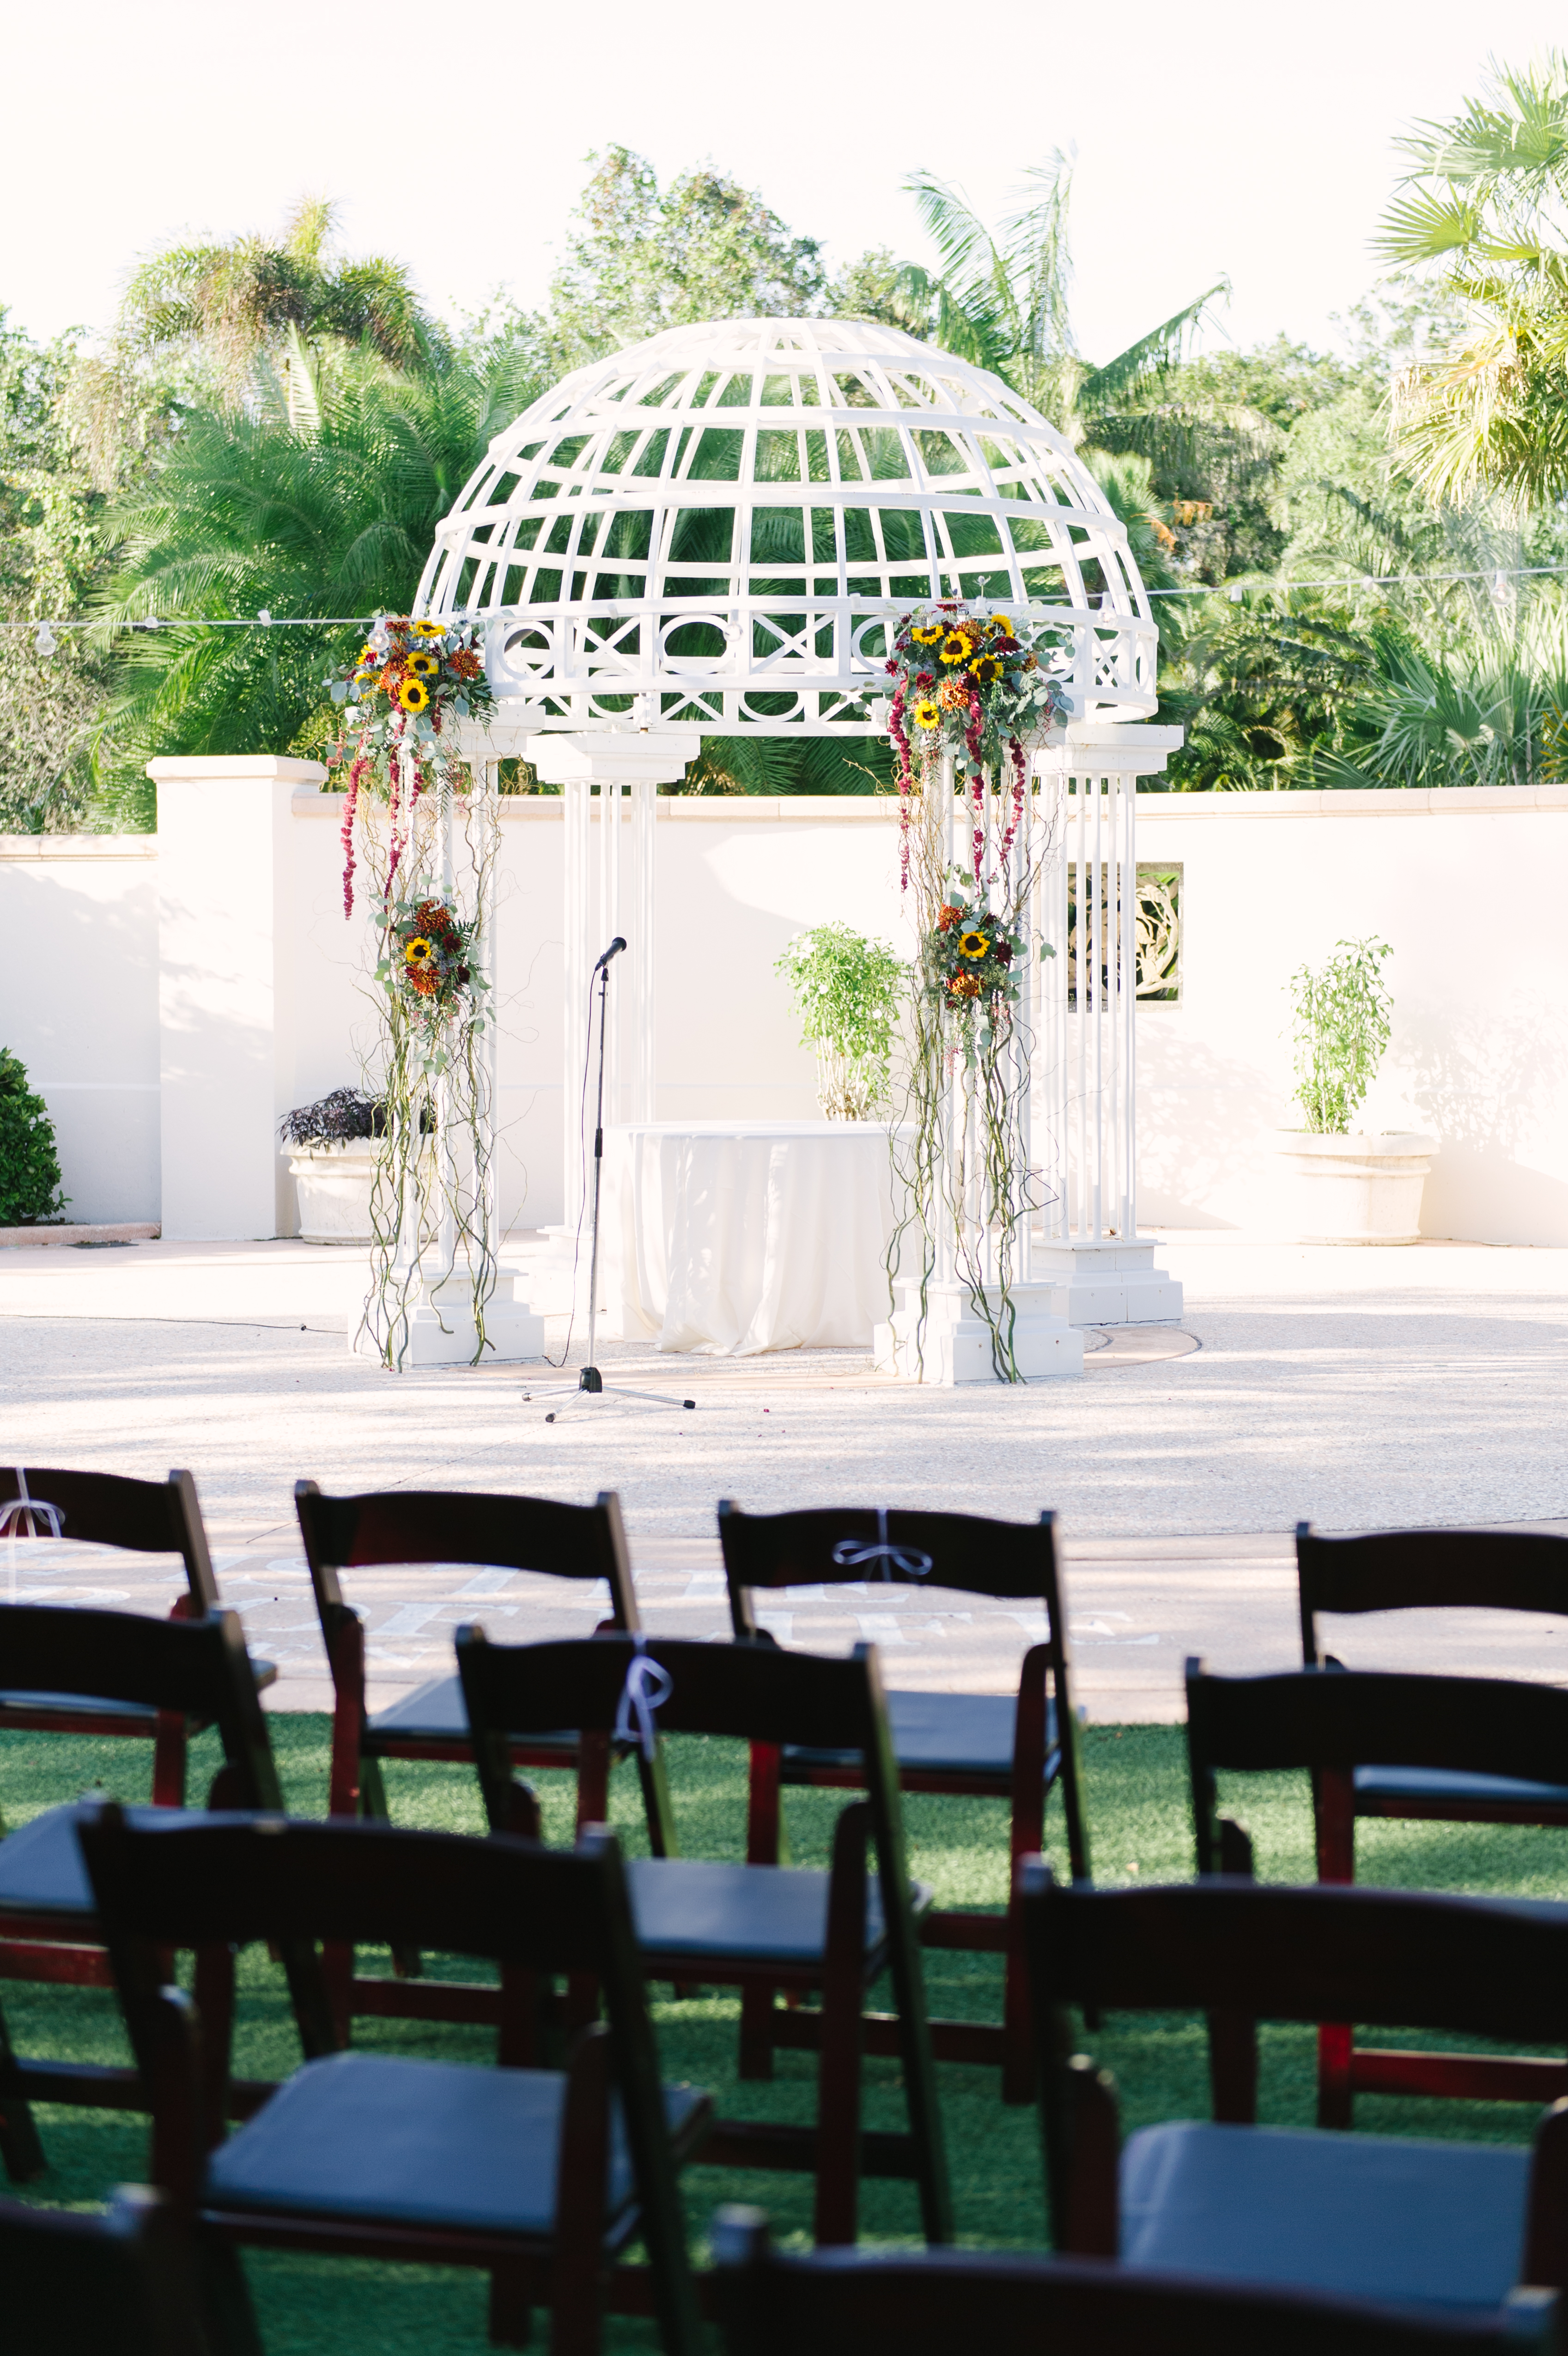 Gazebo in the Wedding Garden